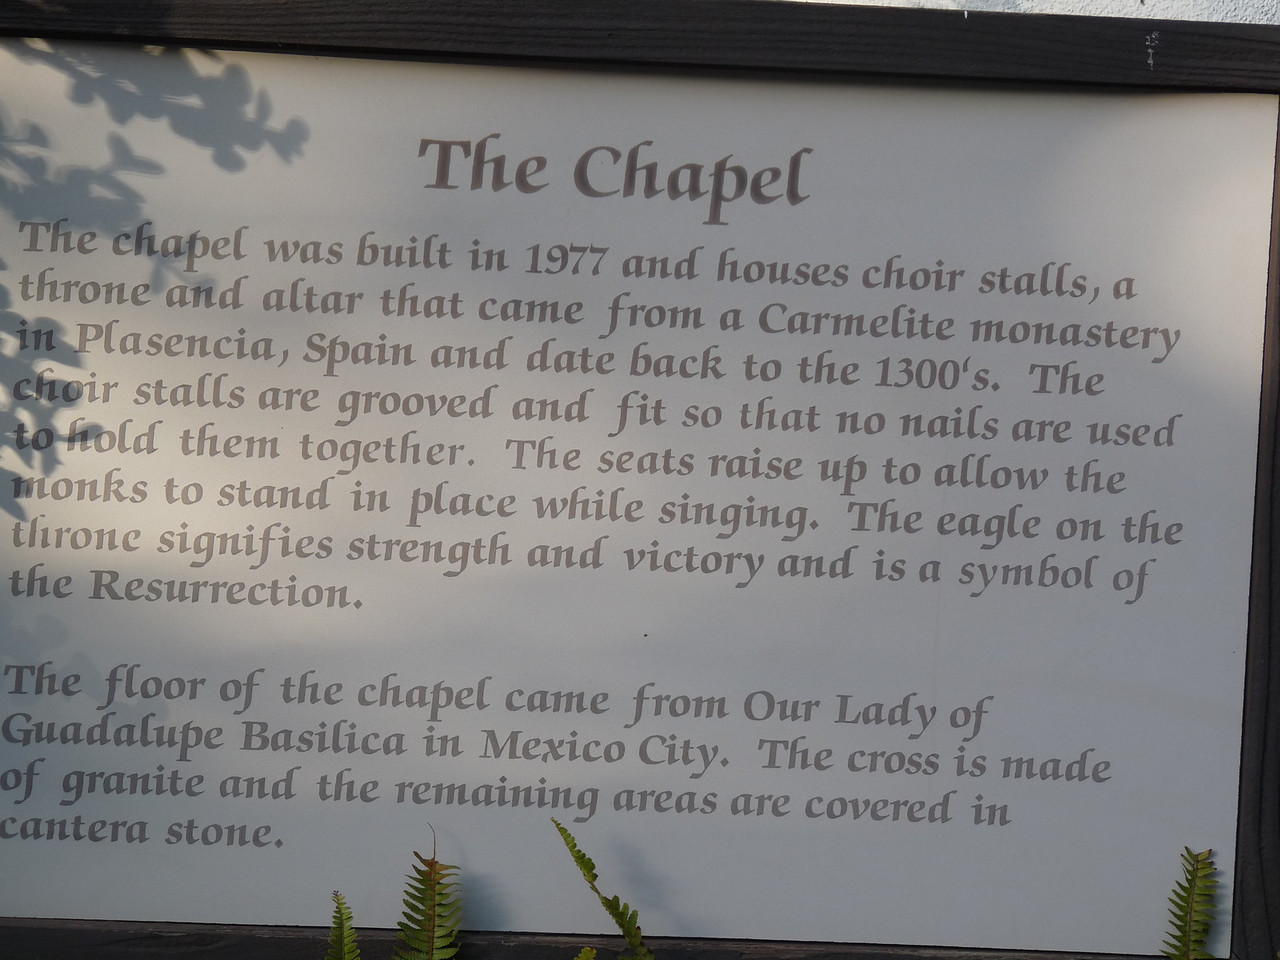 info on the Chapel